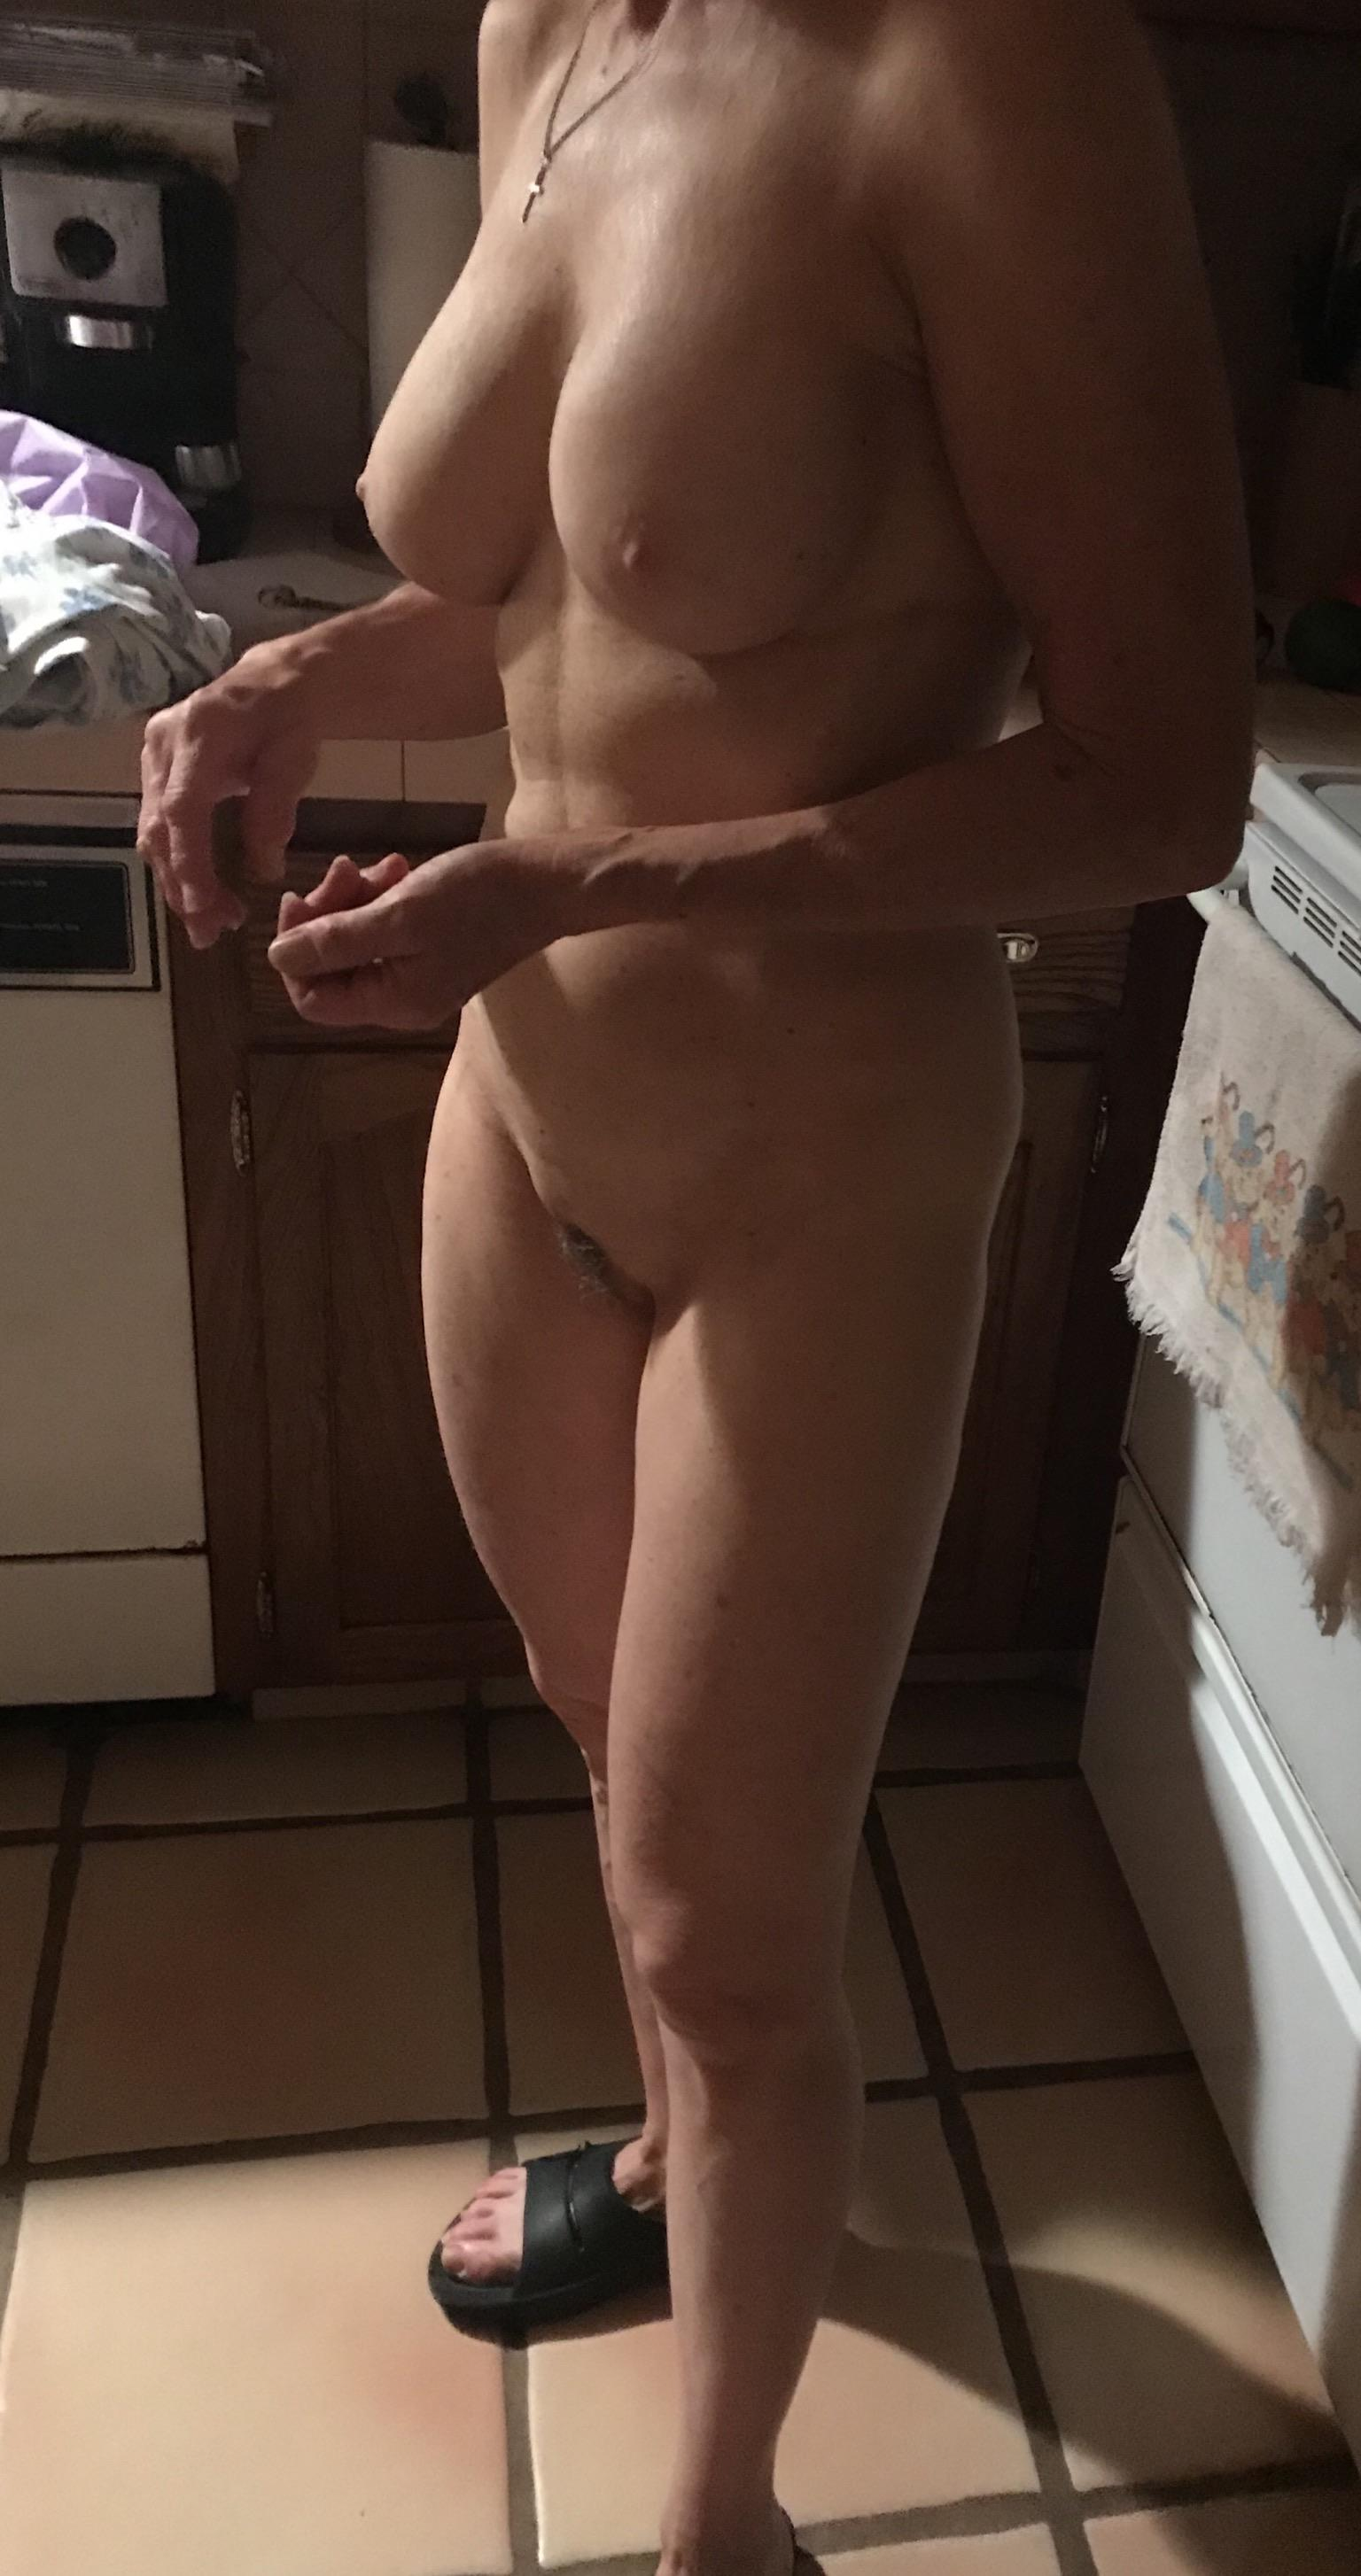 Hanging Out In The Kitchen.